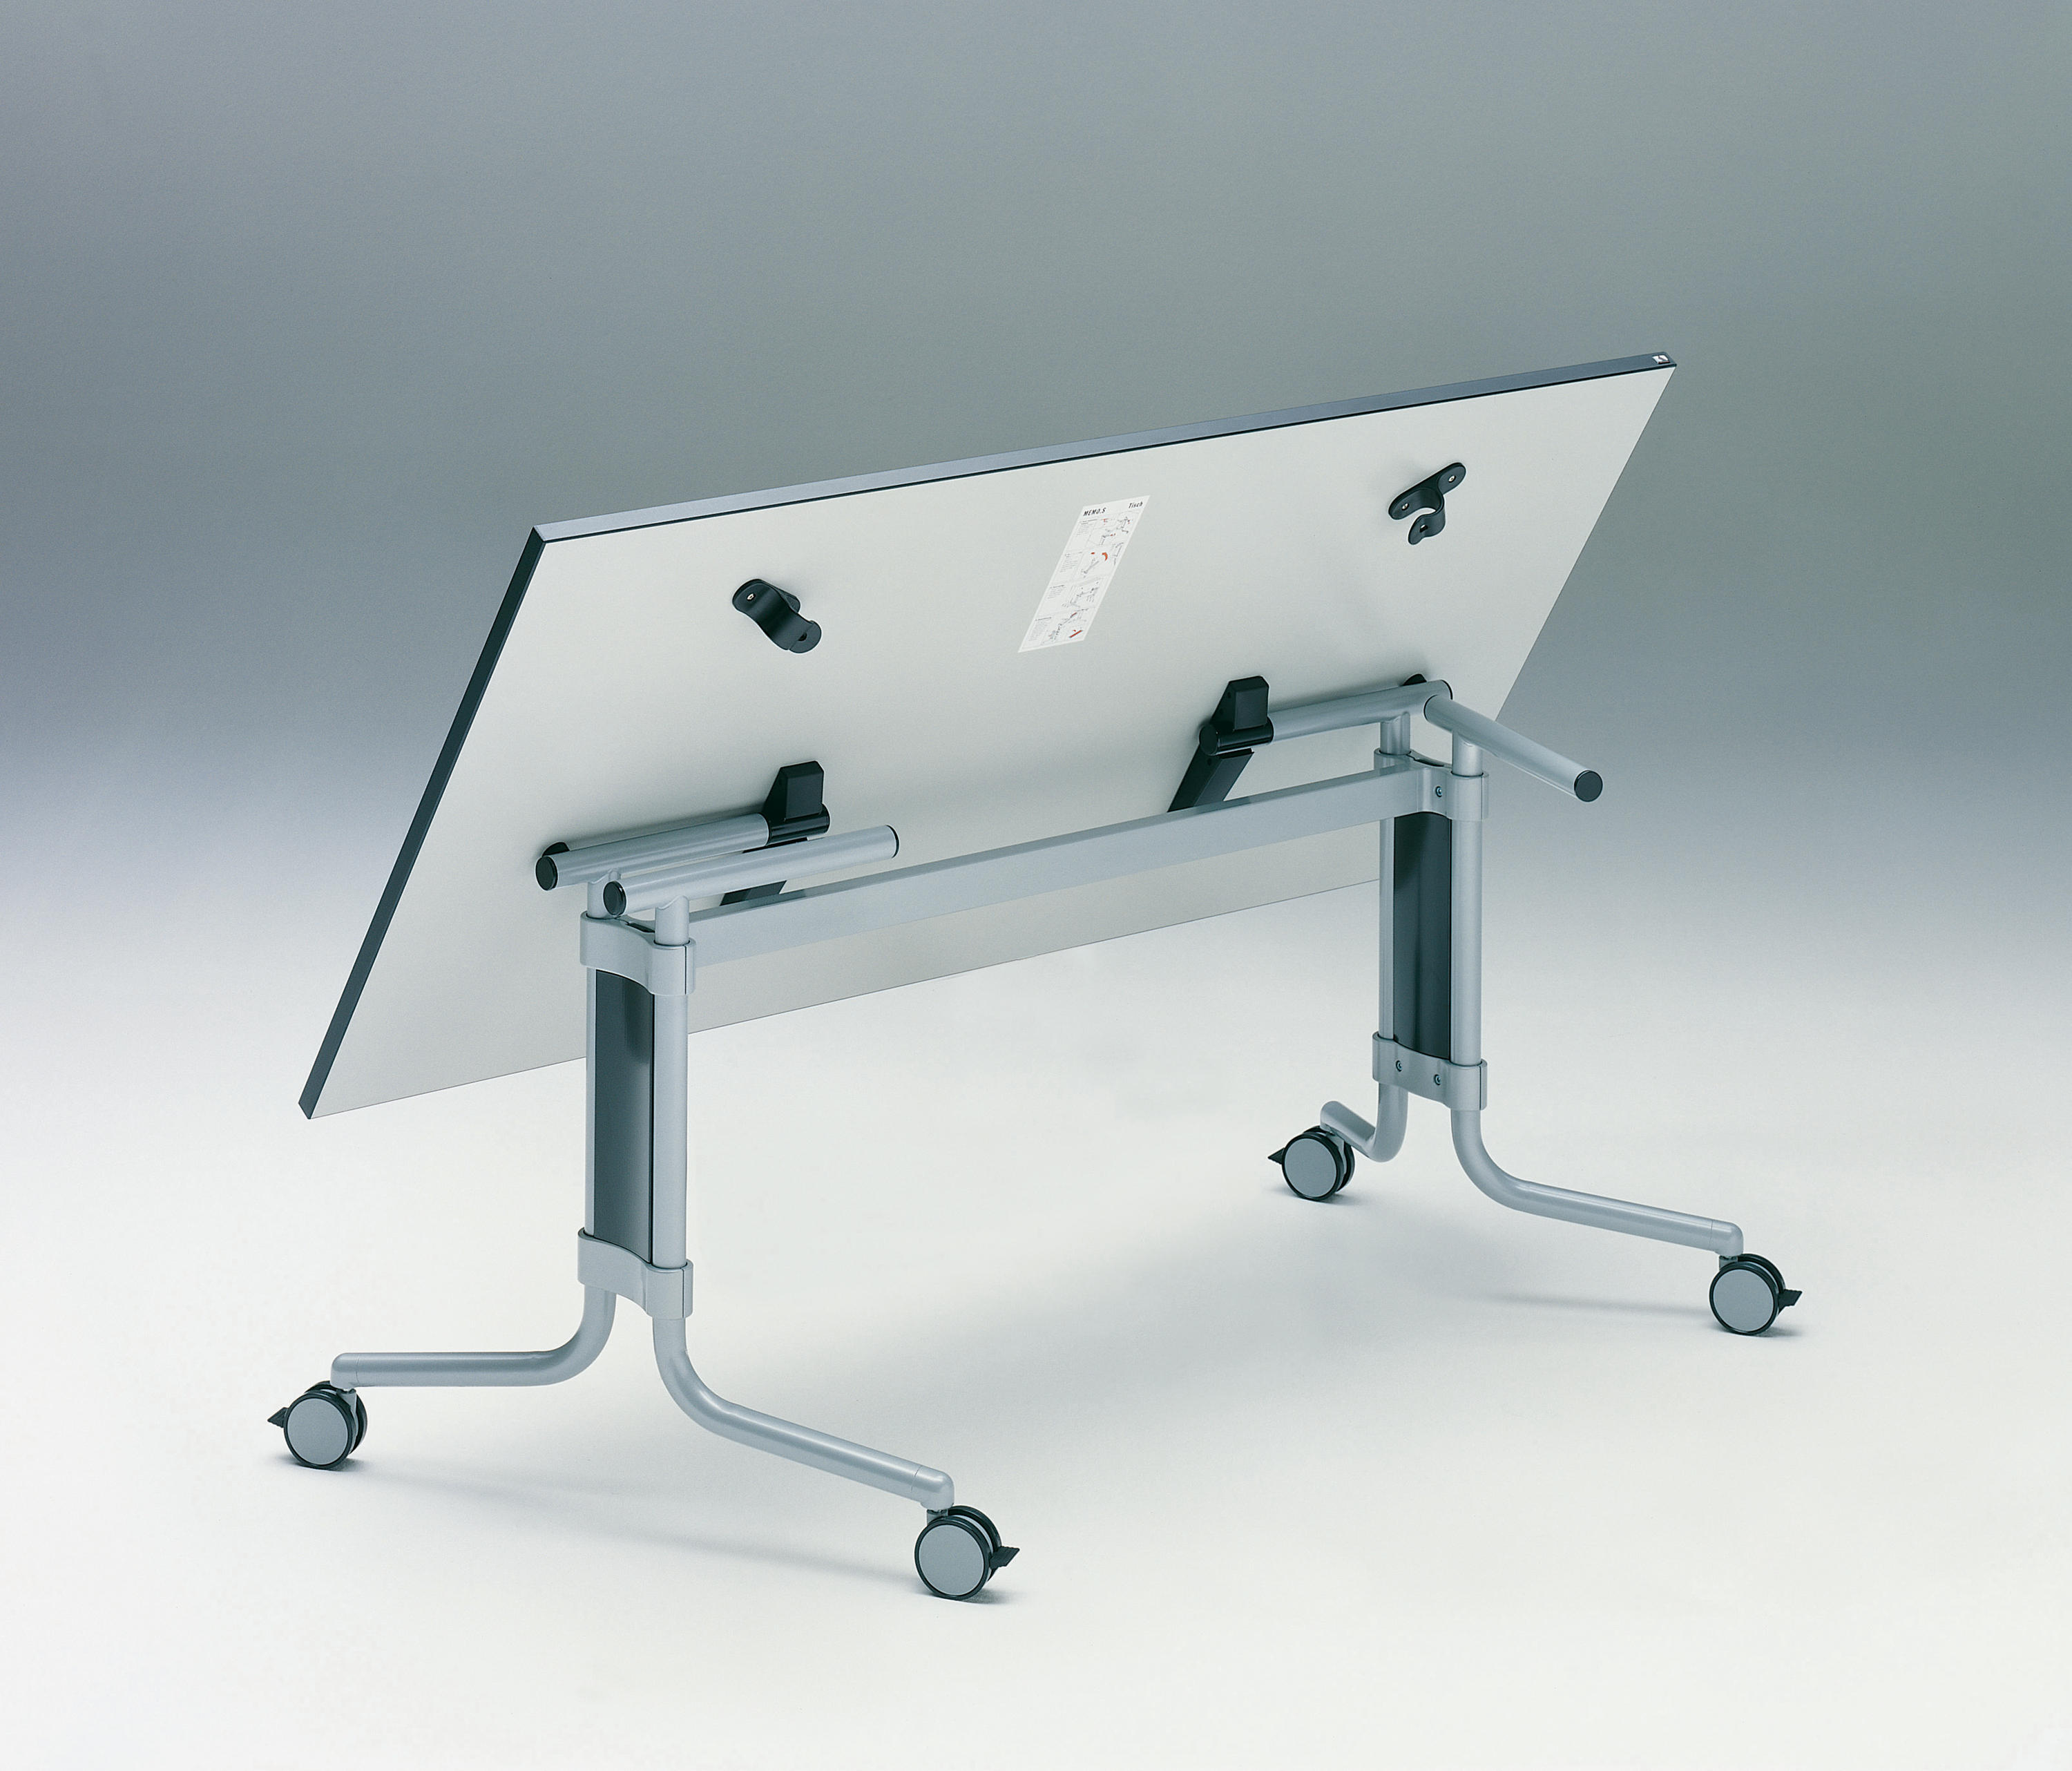 MEMO.S - Multipurpose tables from König+Neurath | Architonic